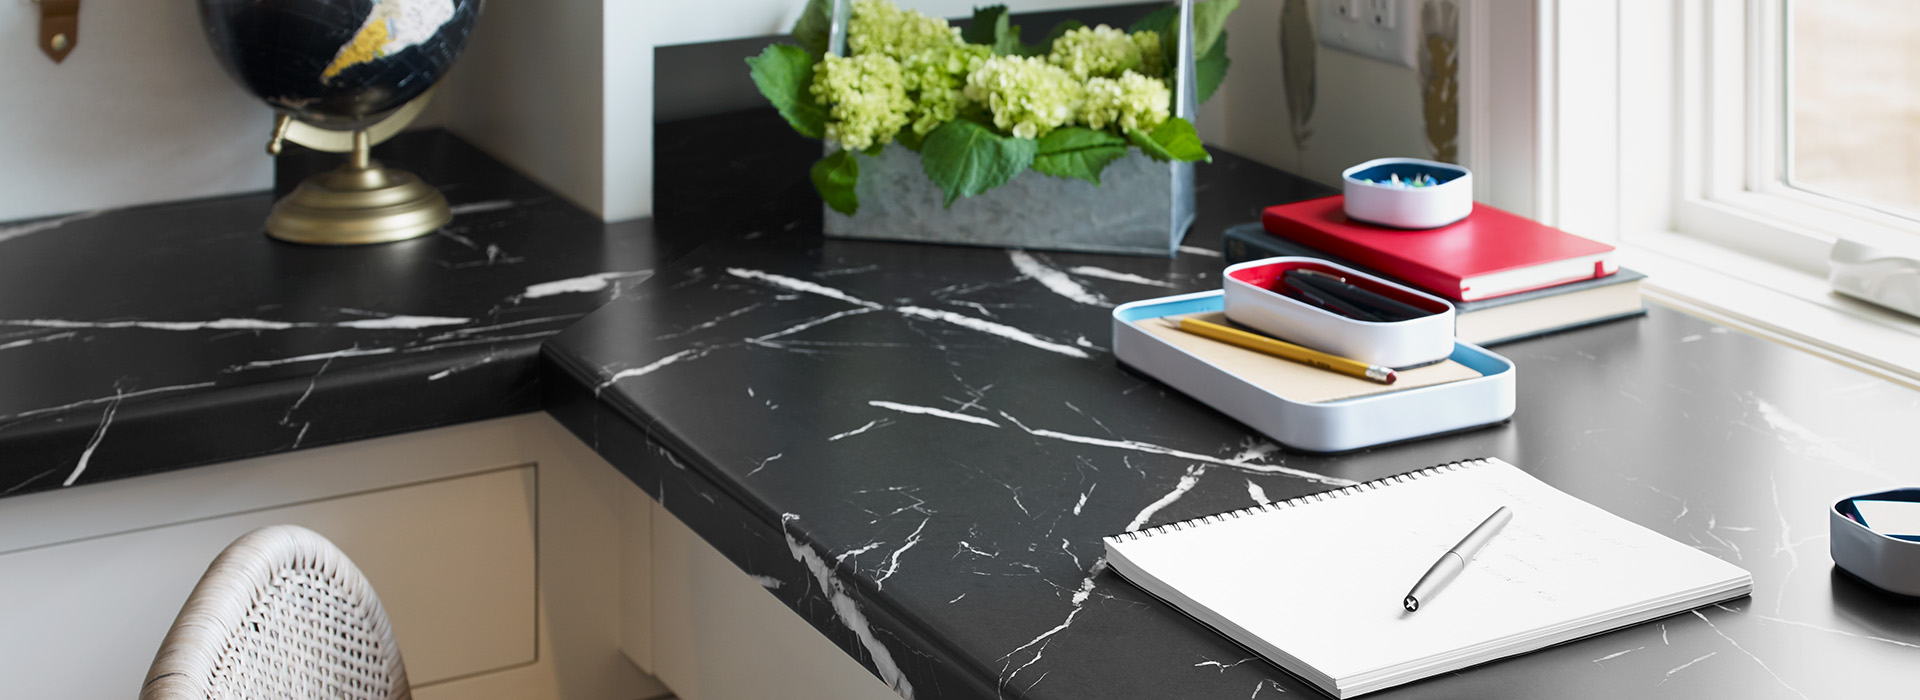 Home desk with notebook and globe 7403 Nero Marquina 180fx